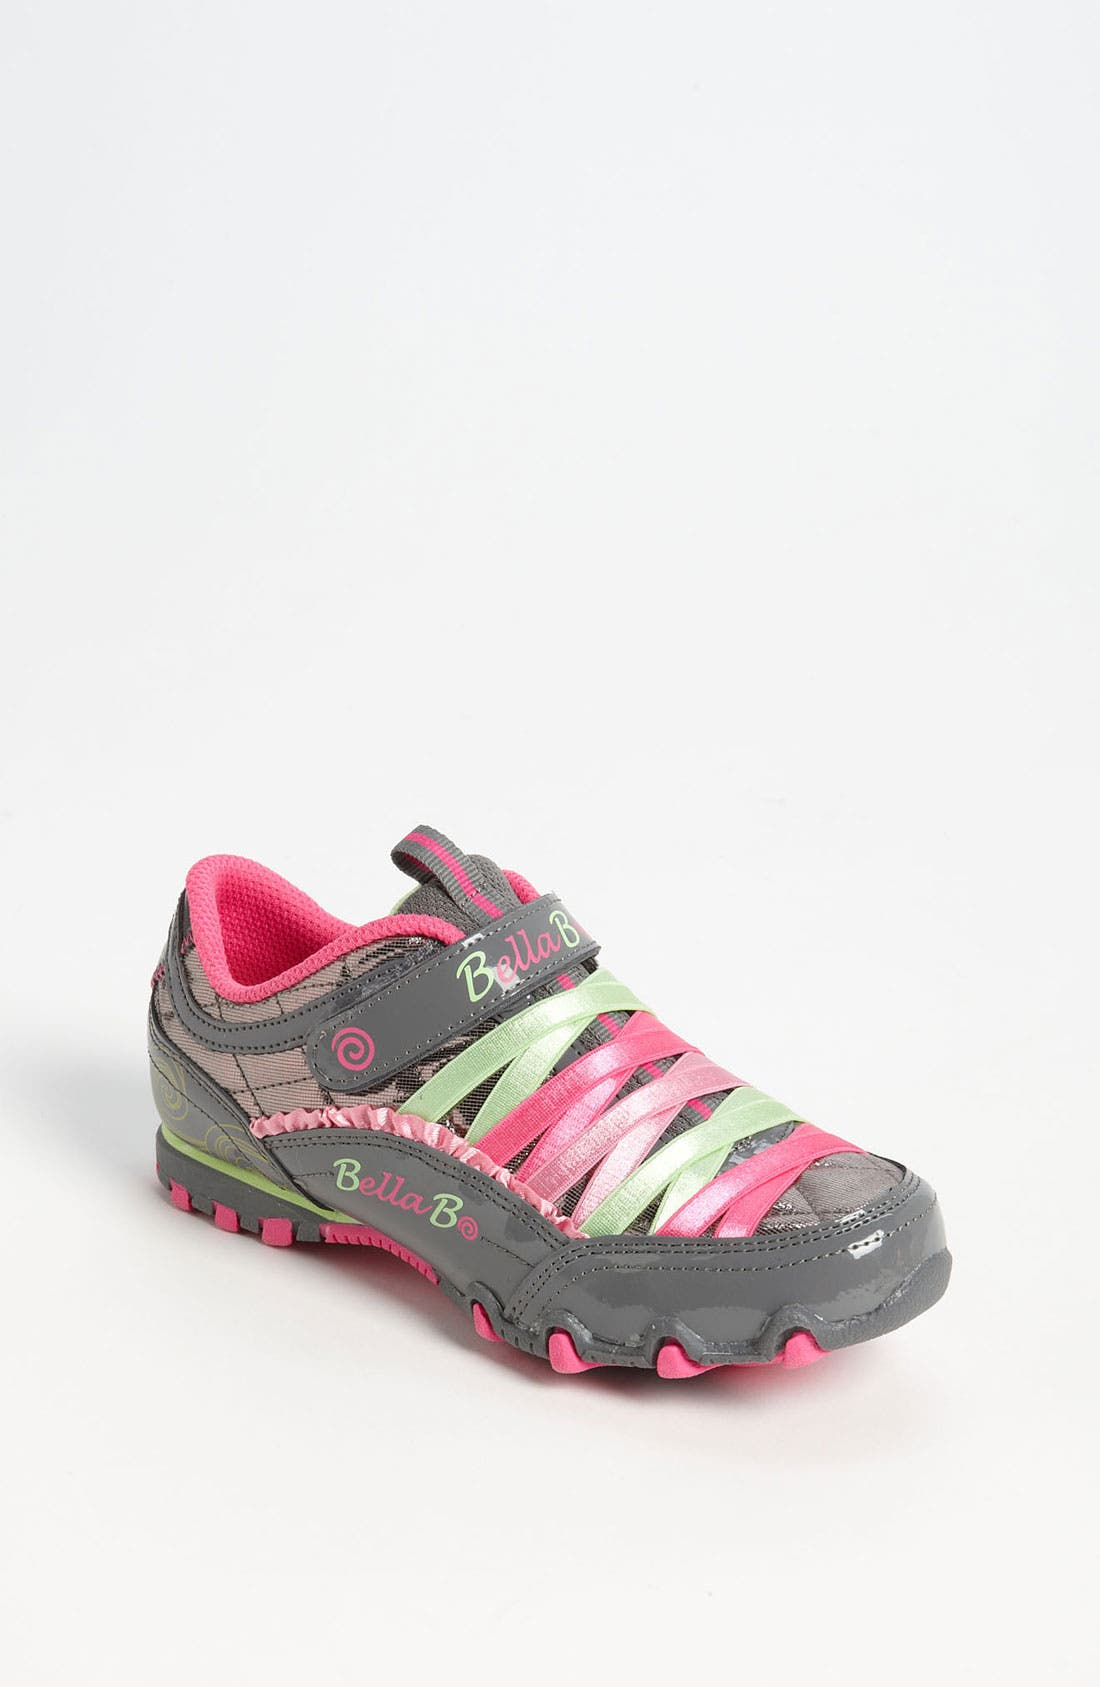 Main Image - SKECHERS 'Bella Ballerina - Sweet Spun' Sneaker (Toddler & Little Kid)